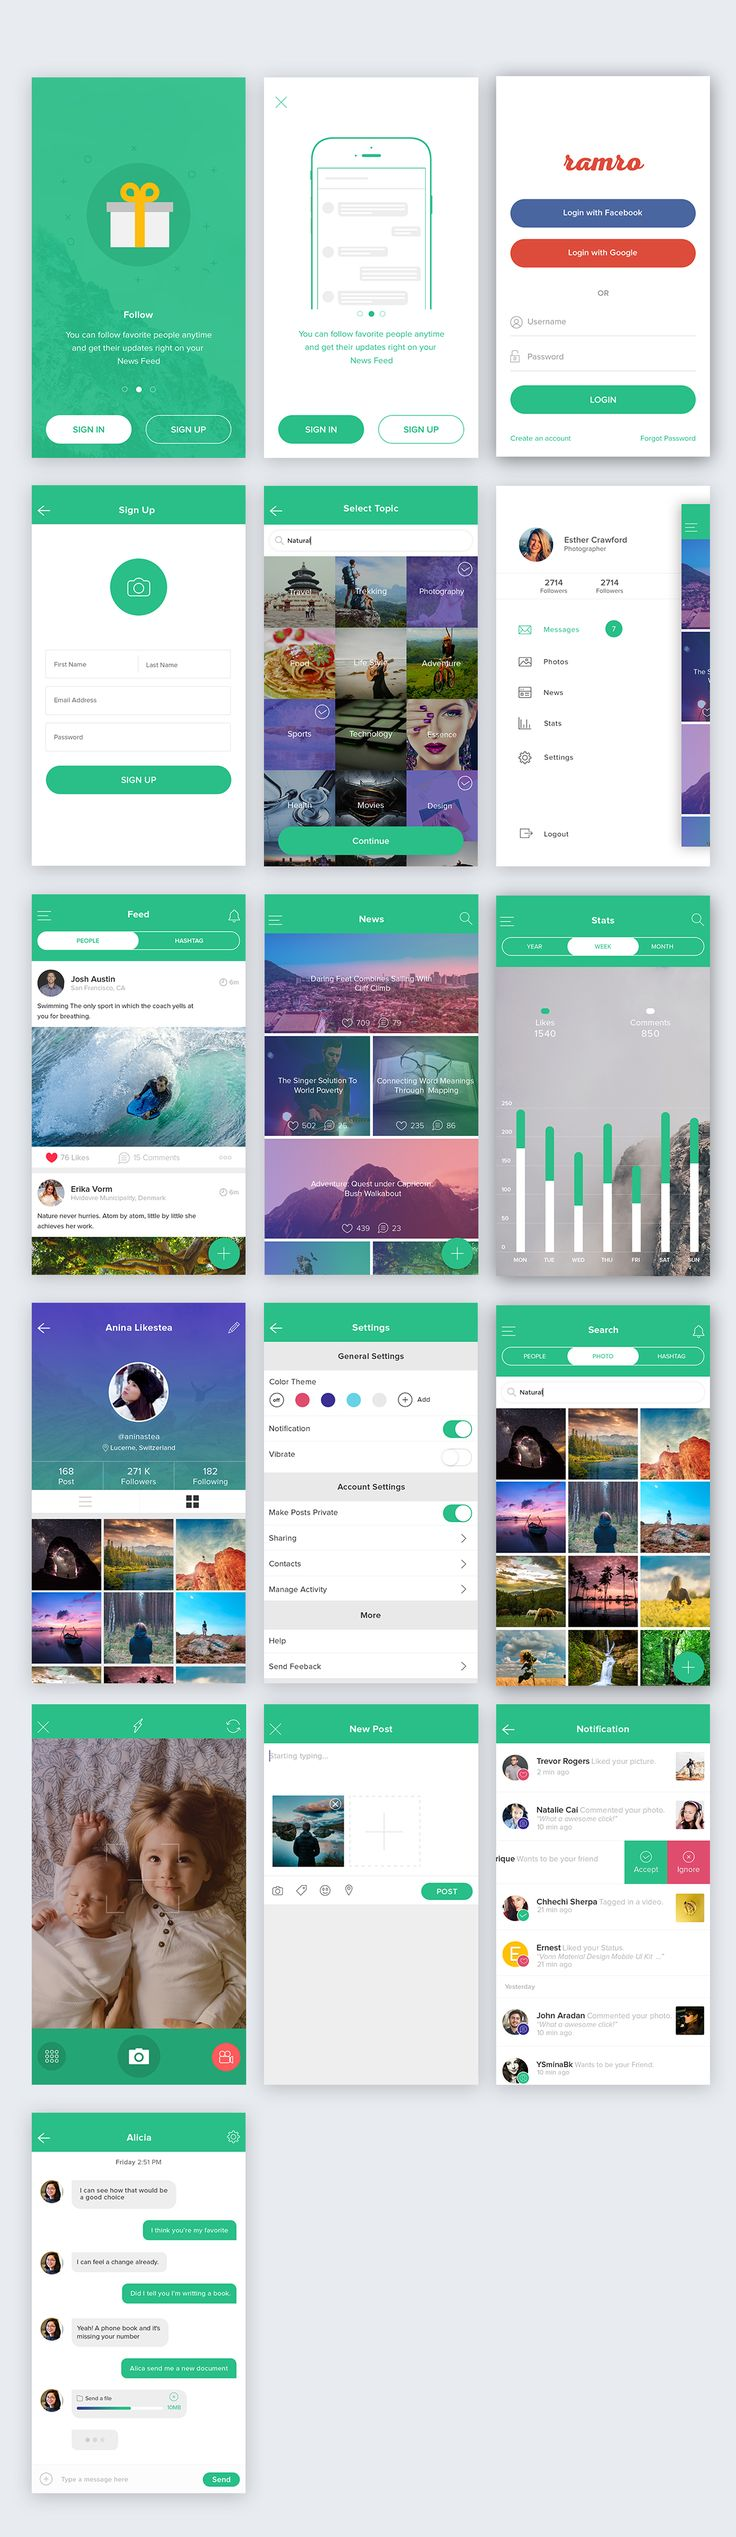 Best 25+ Mobile ui design ideas on Pinterest